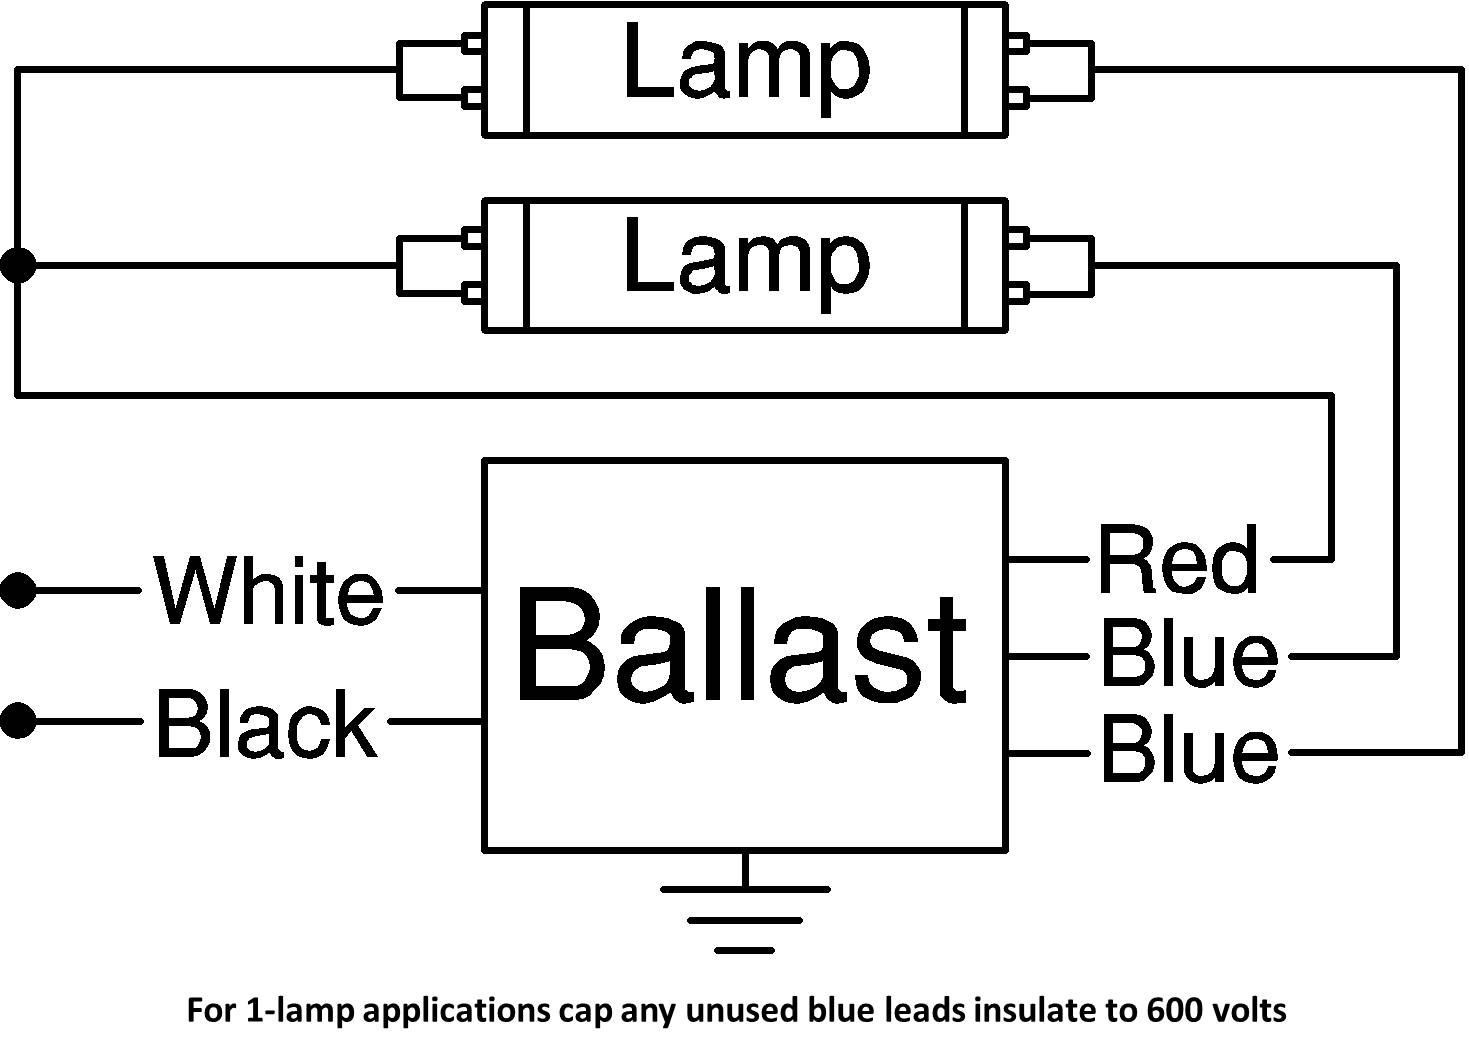 hight resolution of get philips advance ballast wiring diagram download hid philips advance ballast wiring diagram